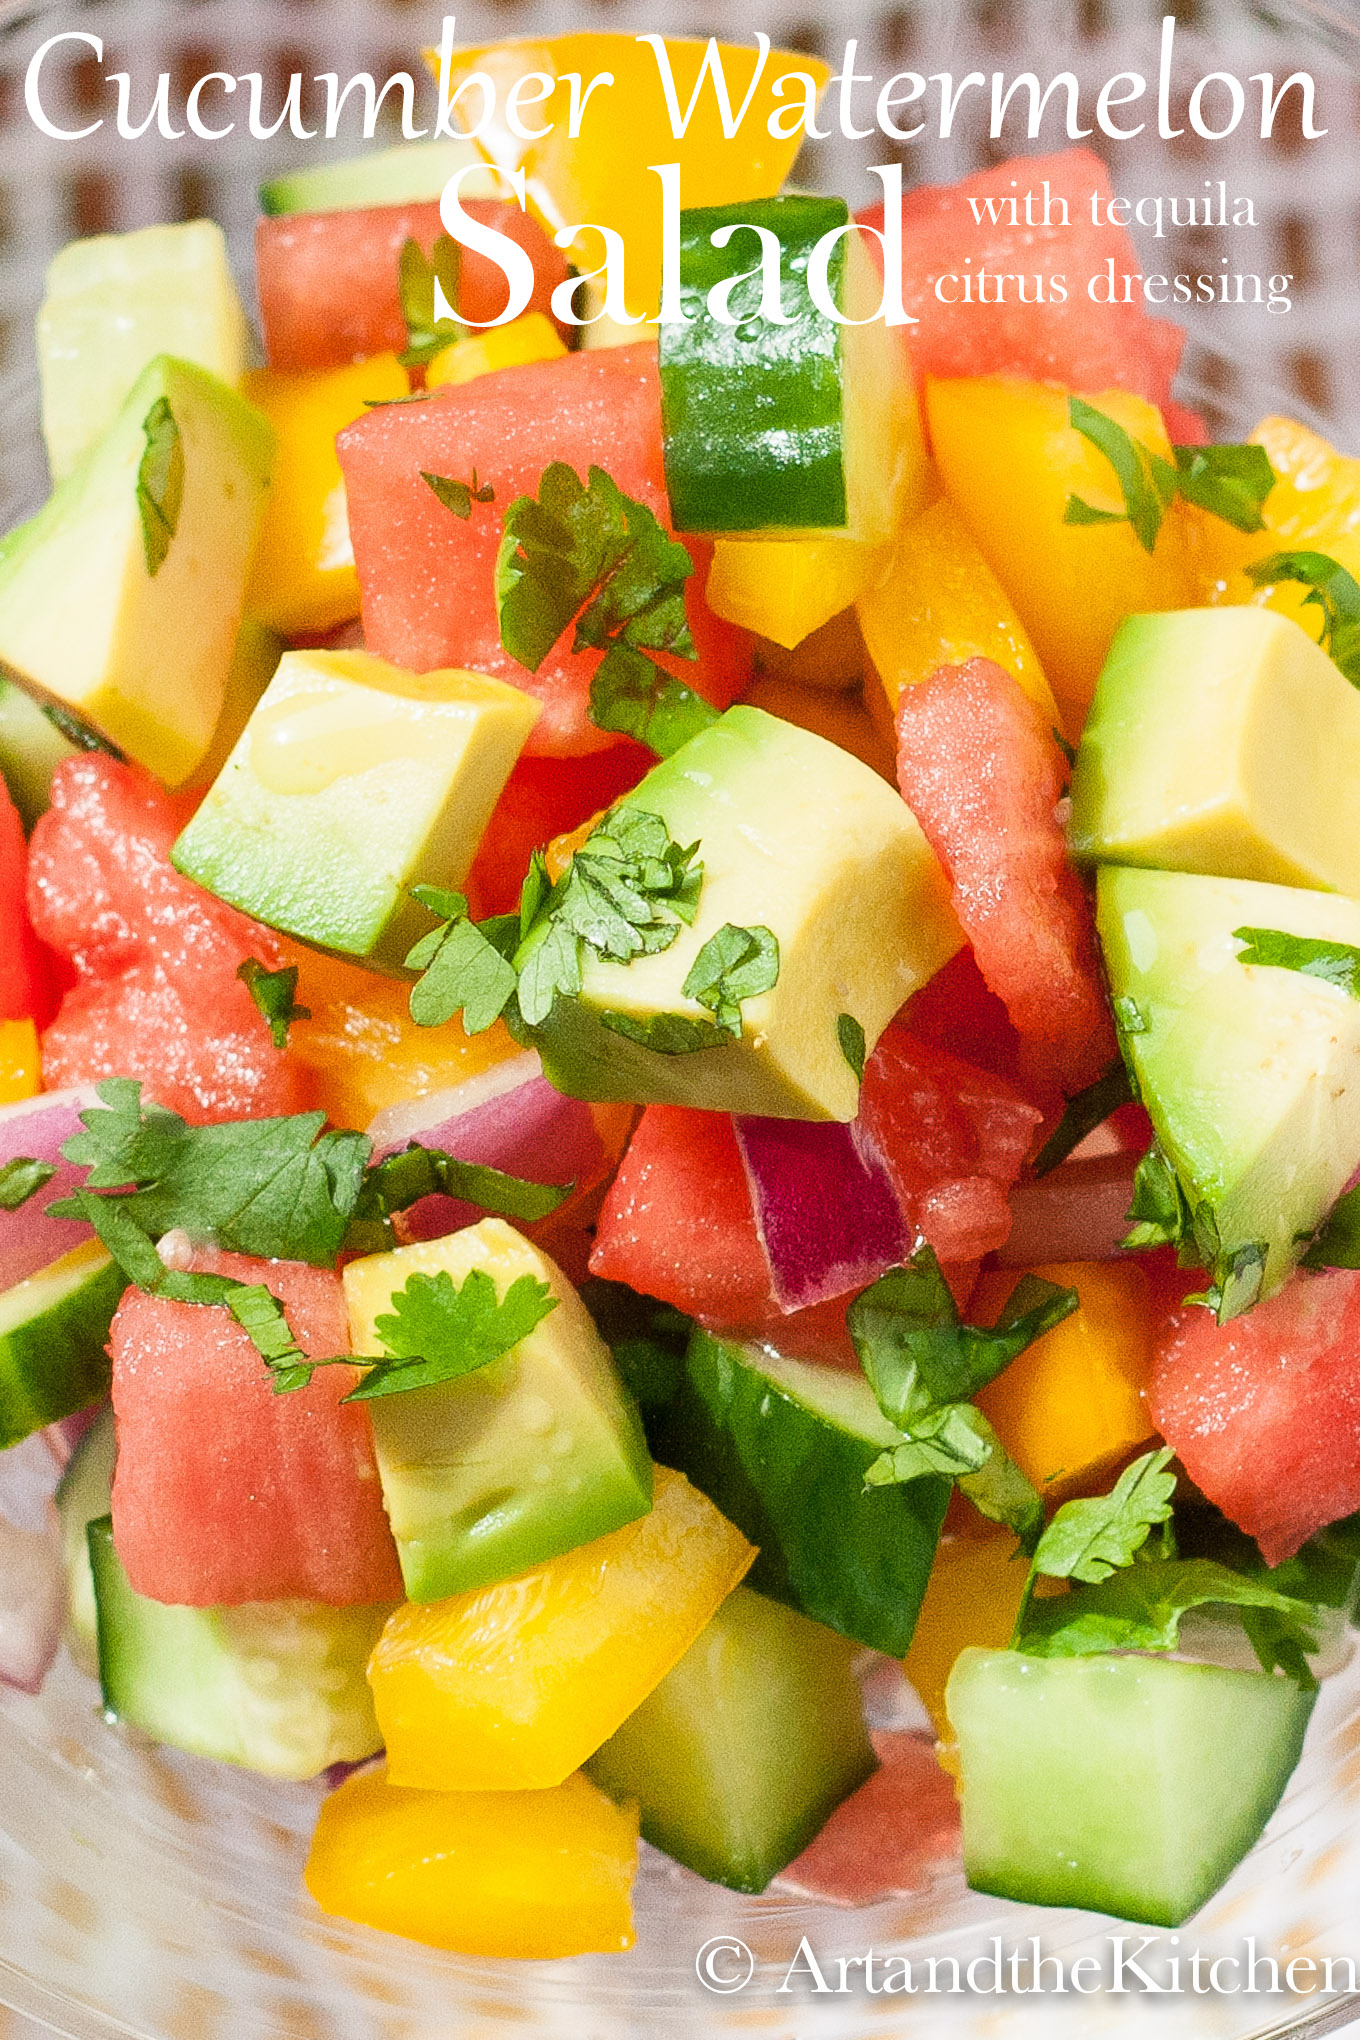 Closeup photo of salad of avocado, watermelon, cucumber, peppers, and red onions.